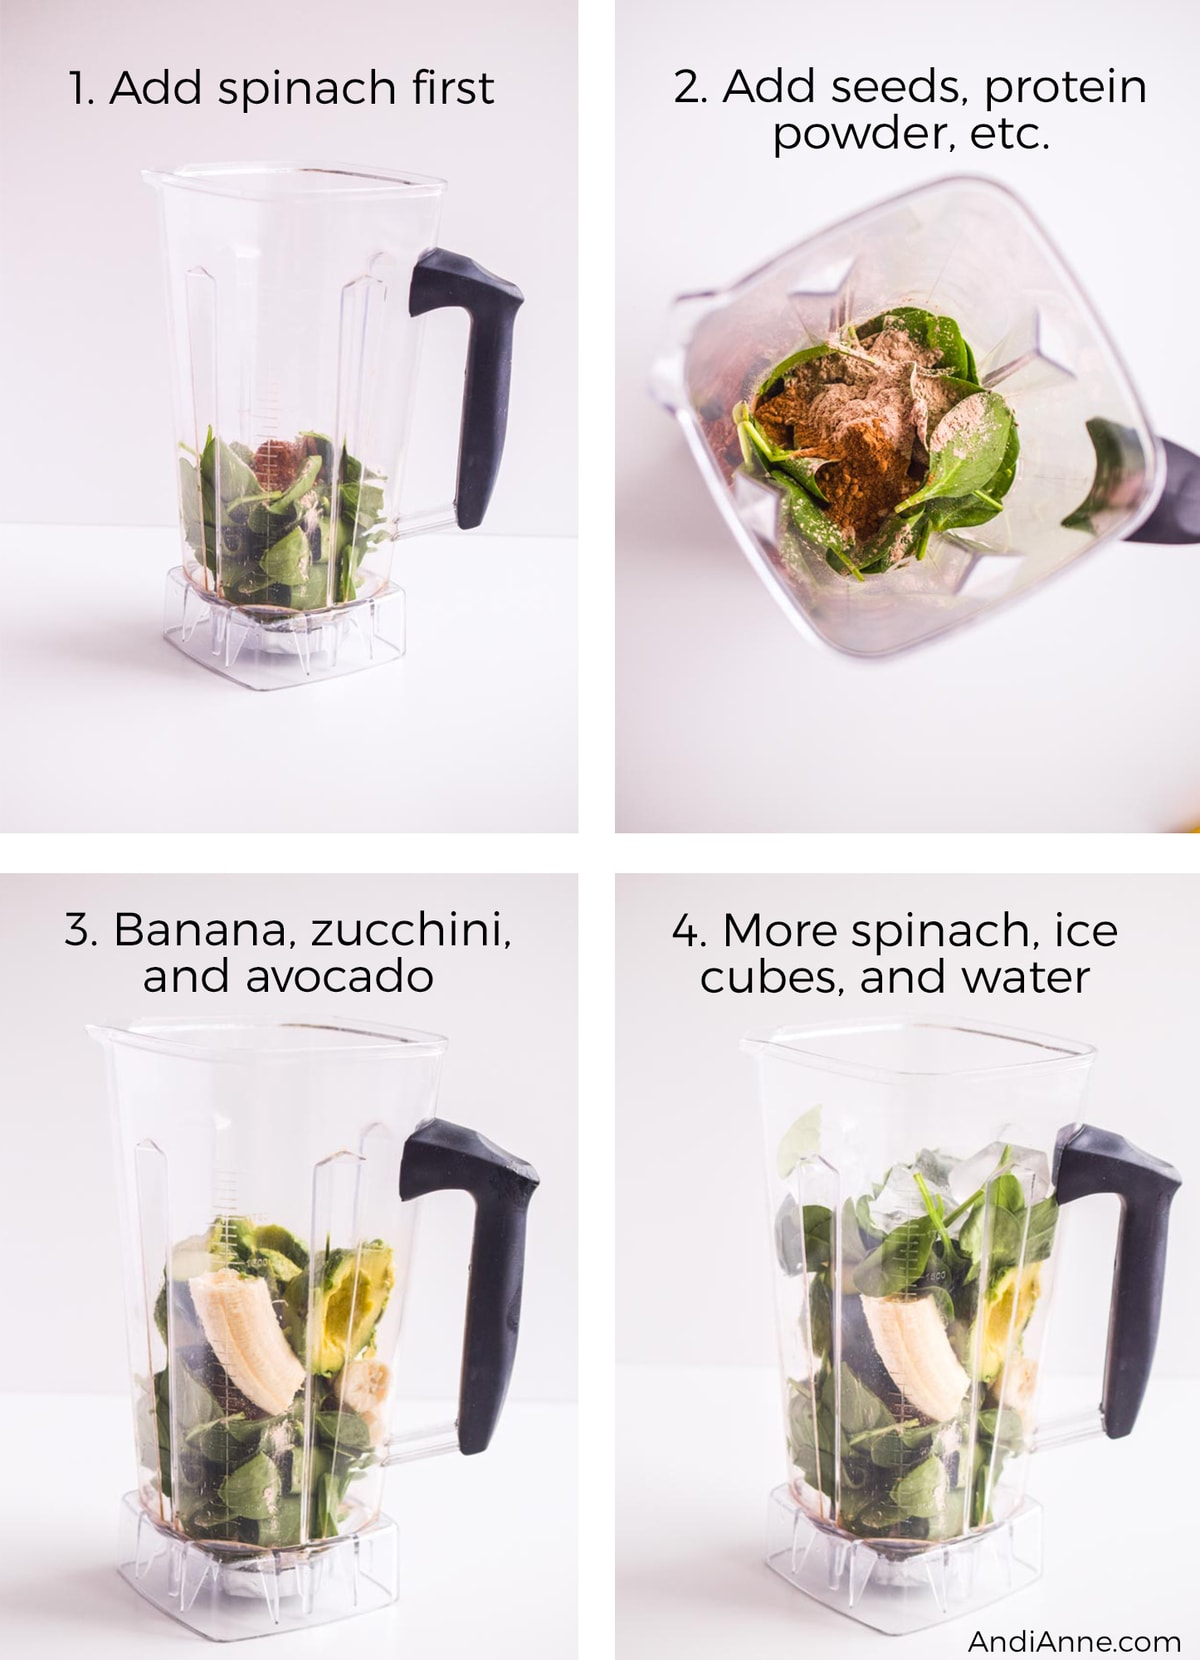 Blender cup holding ingredients to make smoothie. Includes spinach, protein powder, avocado, and ice cubes